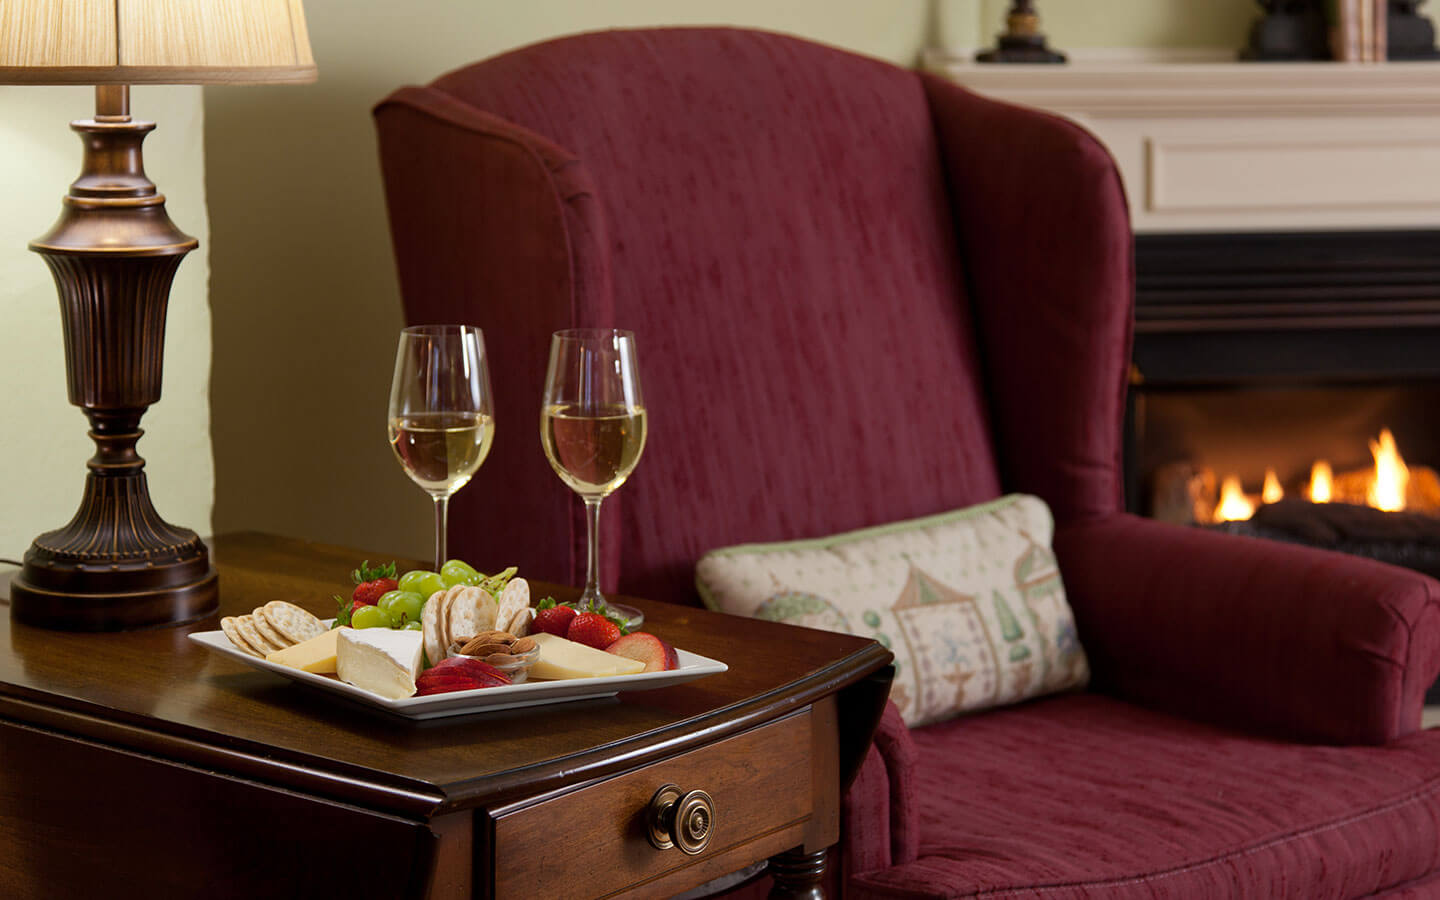 Enhance your stay at our Virginia bed and breakfast with fine wine and cheese delivered to your room